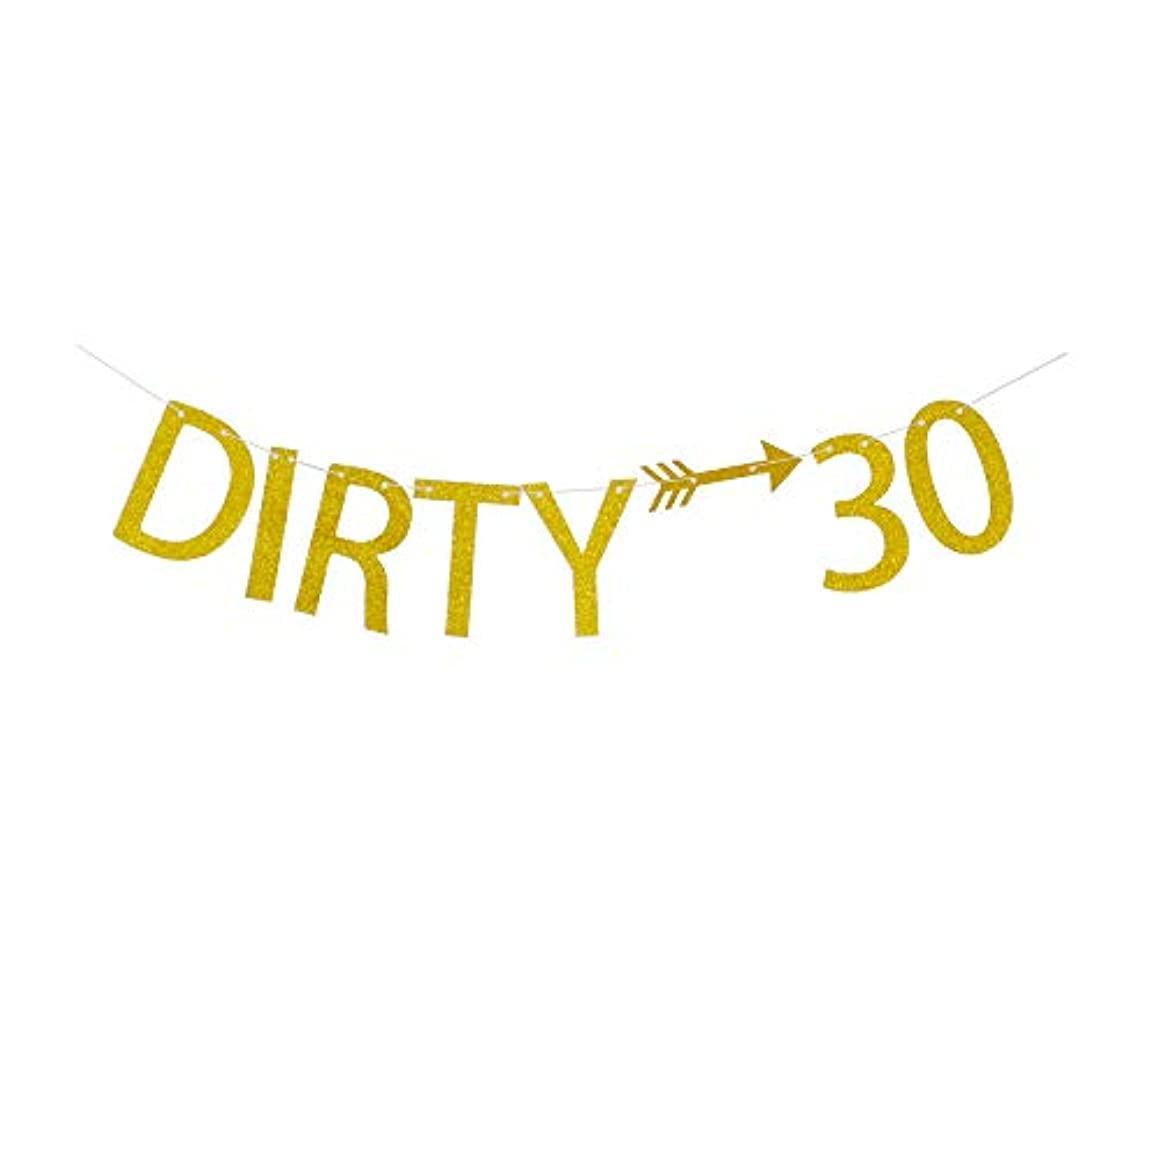 Dirty 30 Banner, 30th Birthday Party Supplies, Gold Glitter Party Decorations